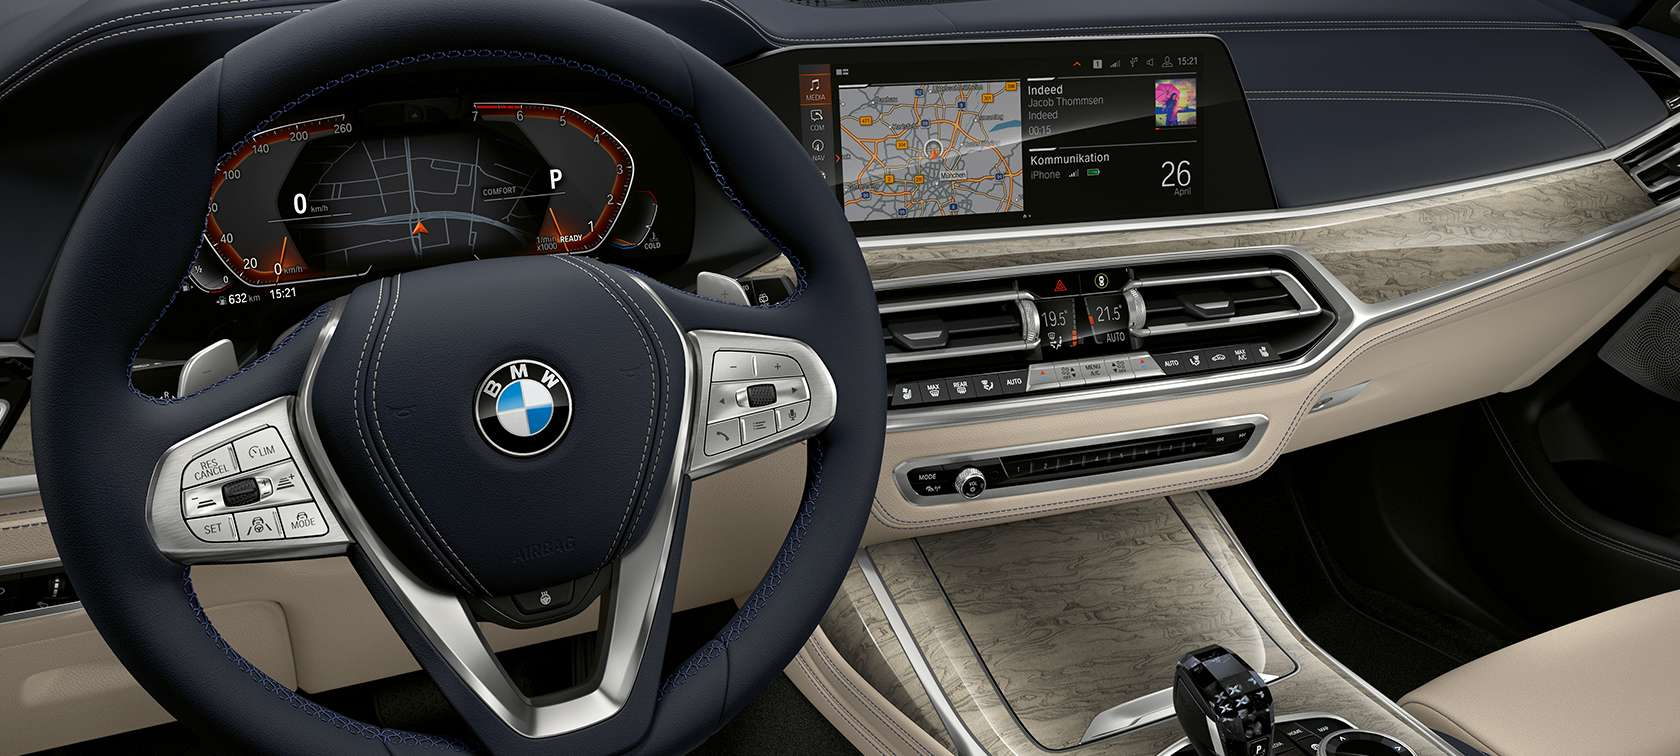 2019 Bmw X7 Xdrive40i Price In Uae Specs Amp Review In